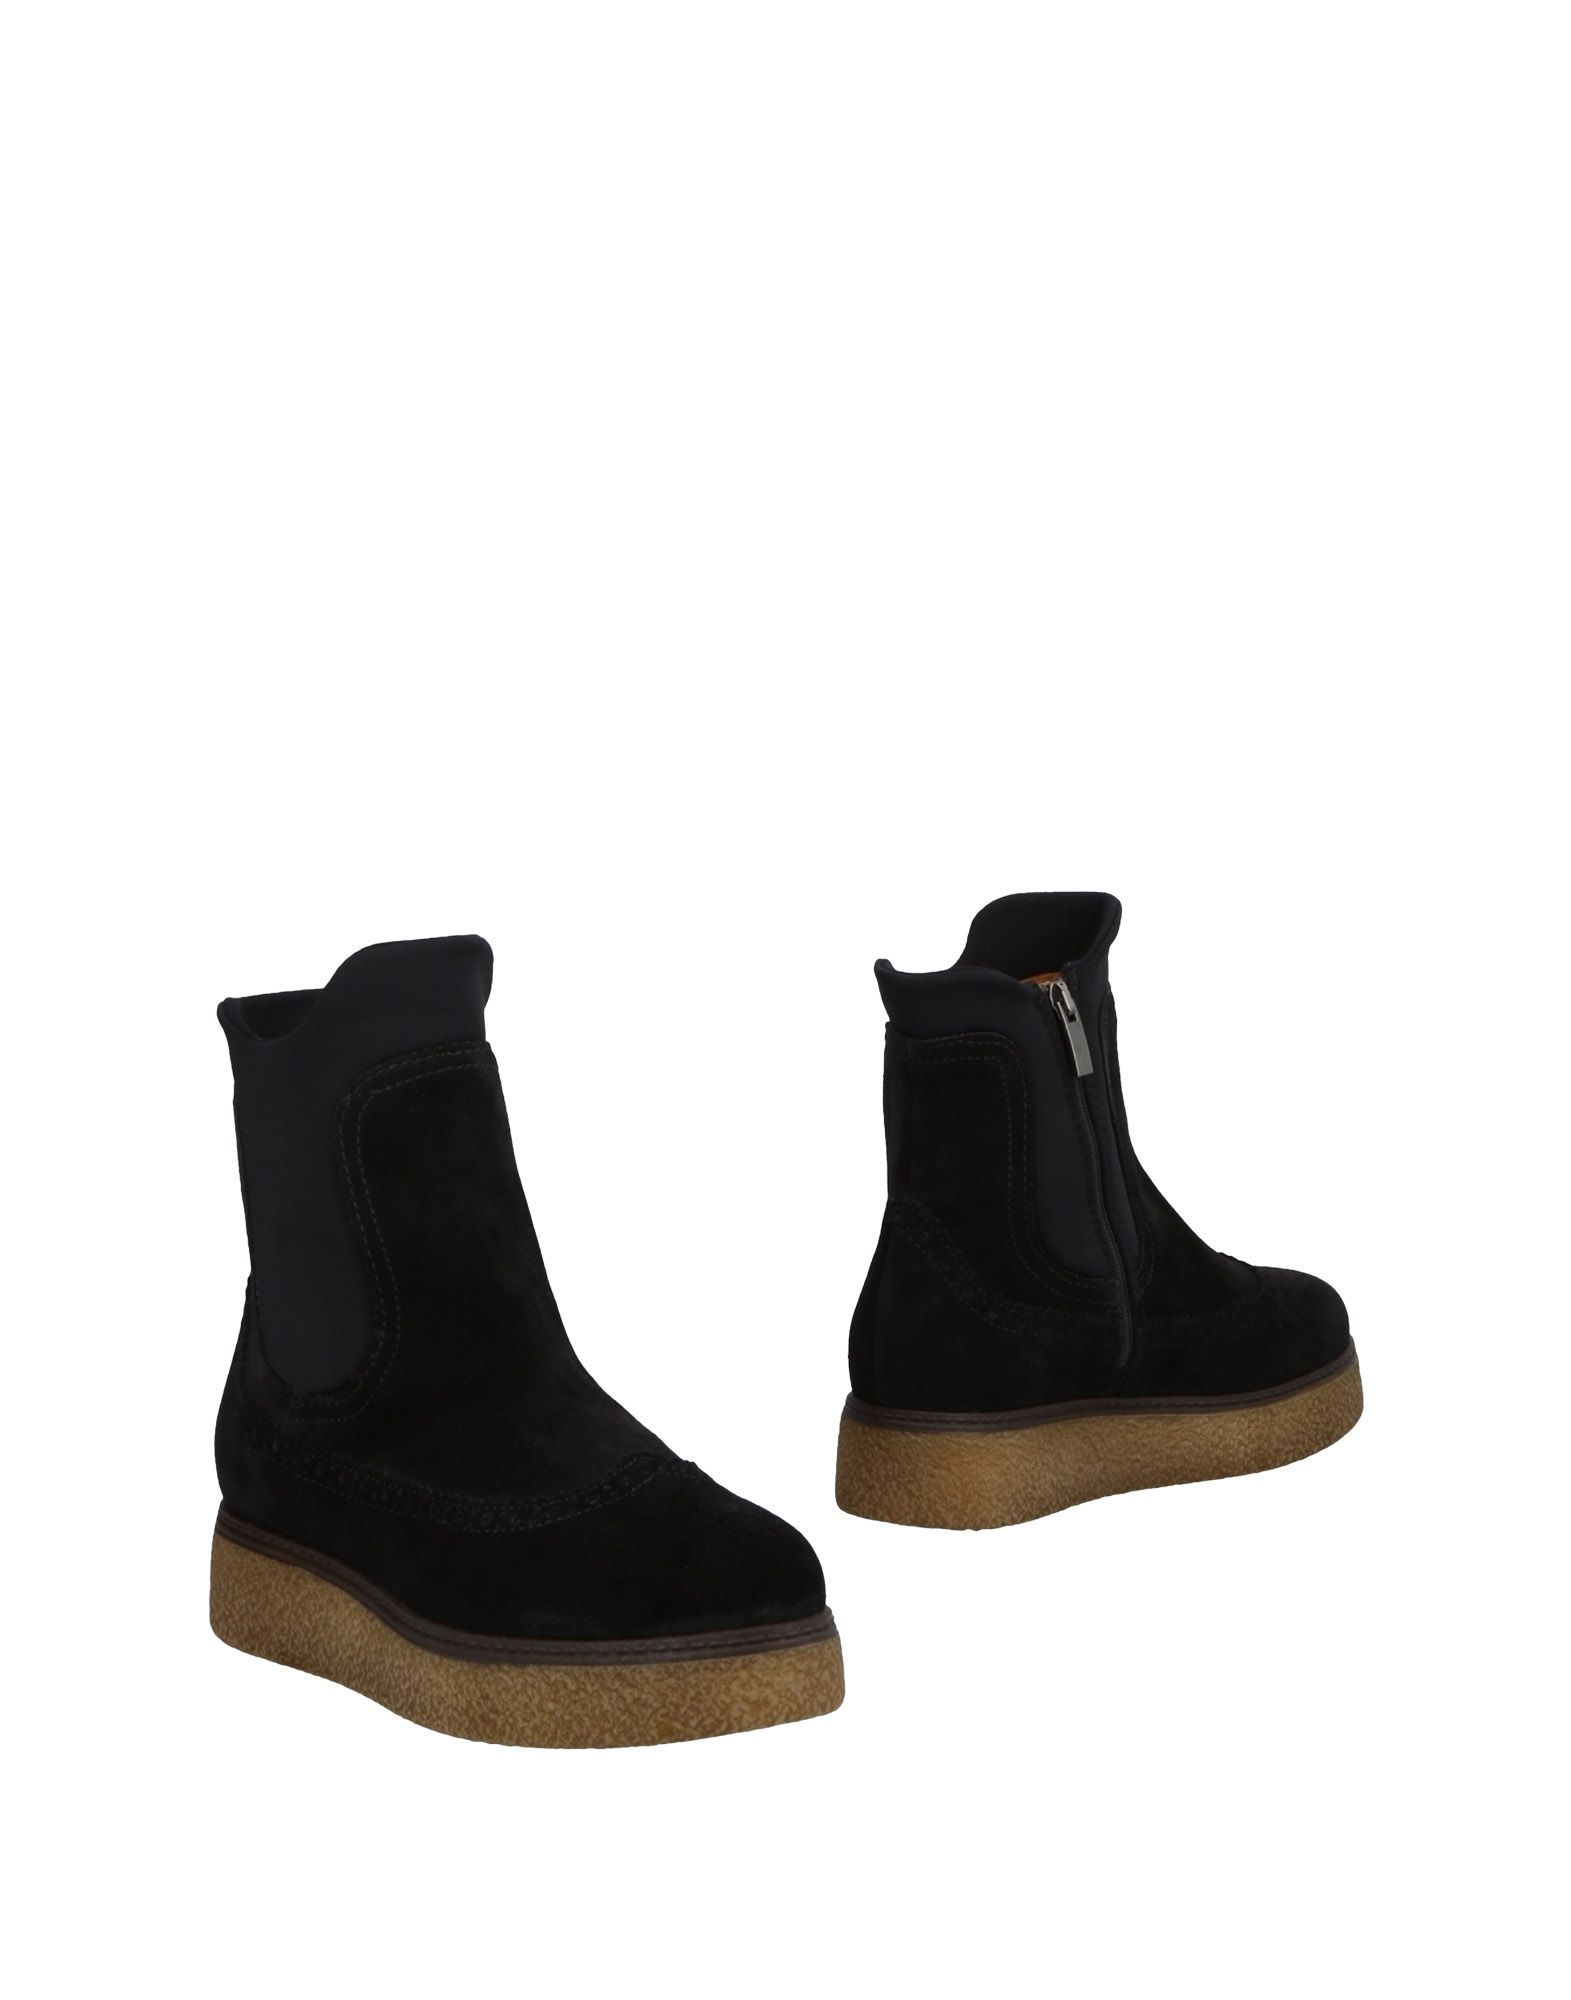 Peperosa Peperosa Ankle Boot - Women Peperosa Peperosa Ankle Boots online on  Australia - 11495816PW 161541